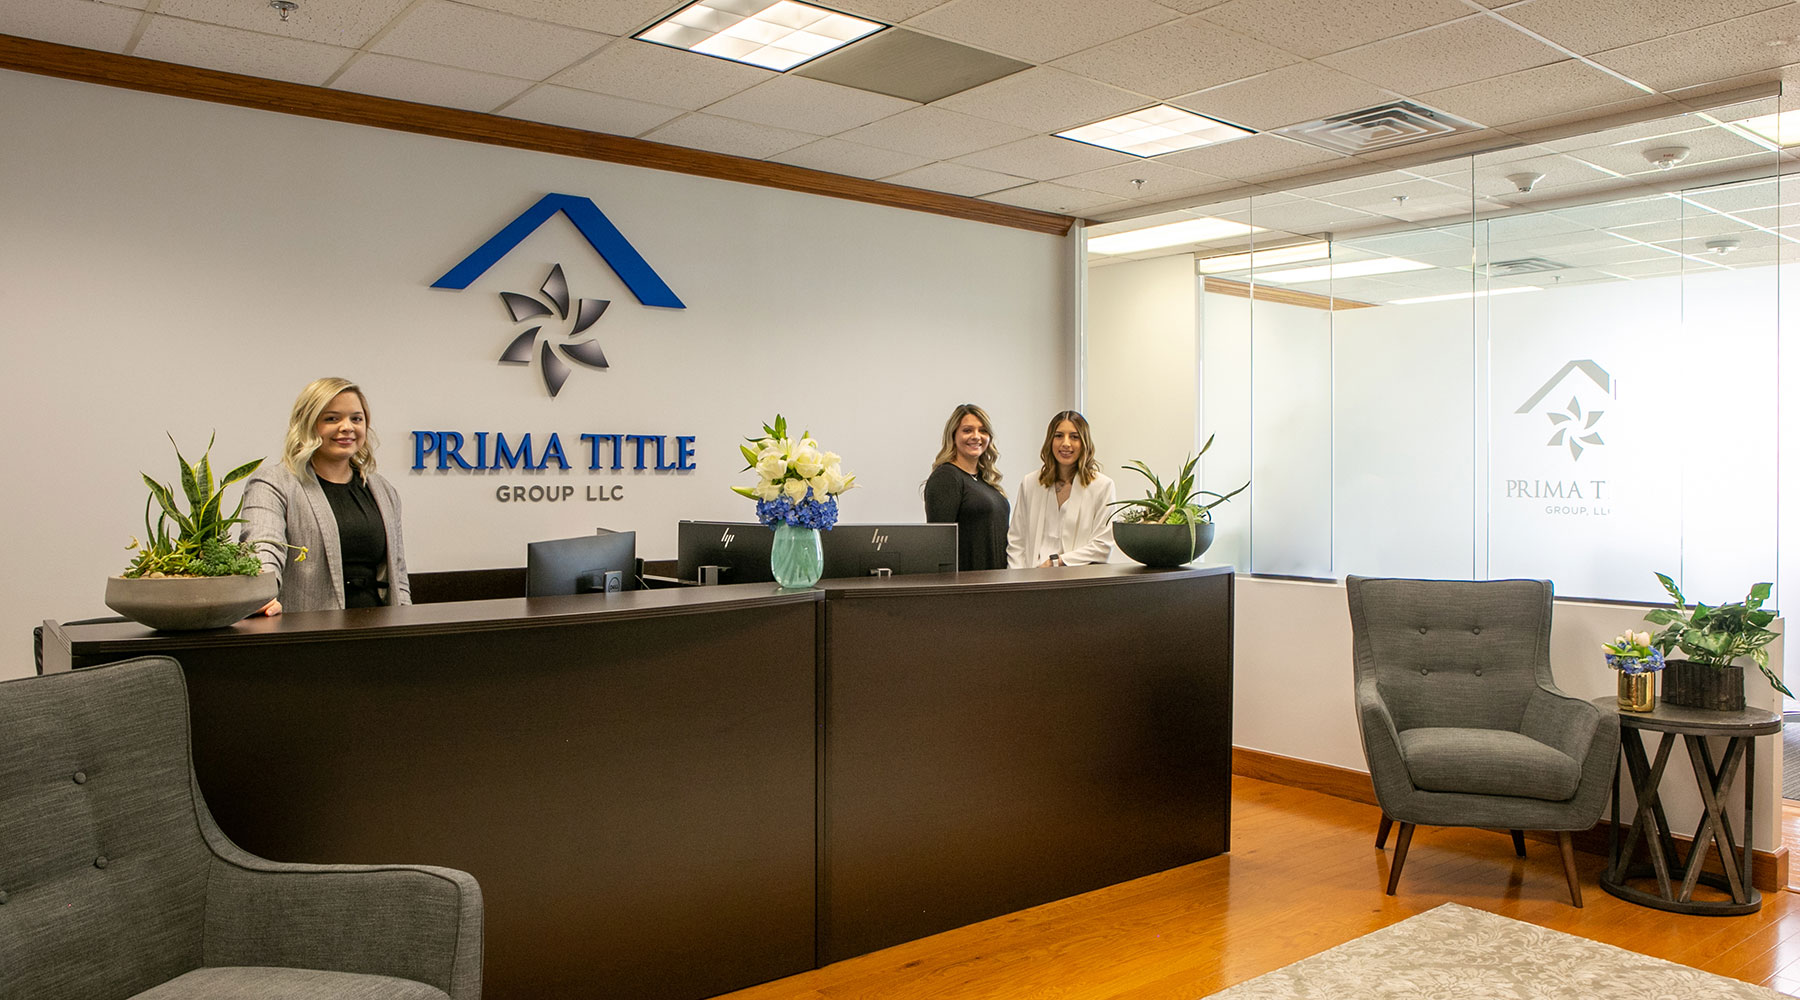 Experts You Can Trust | Prima Title Group LLC